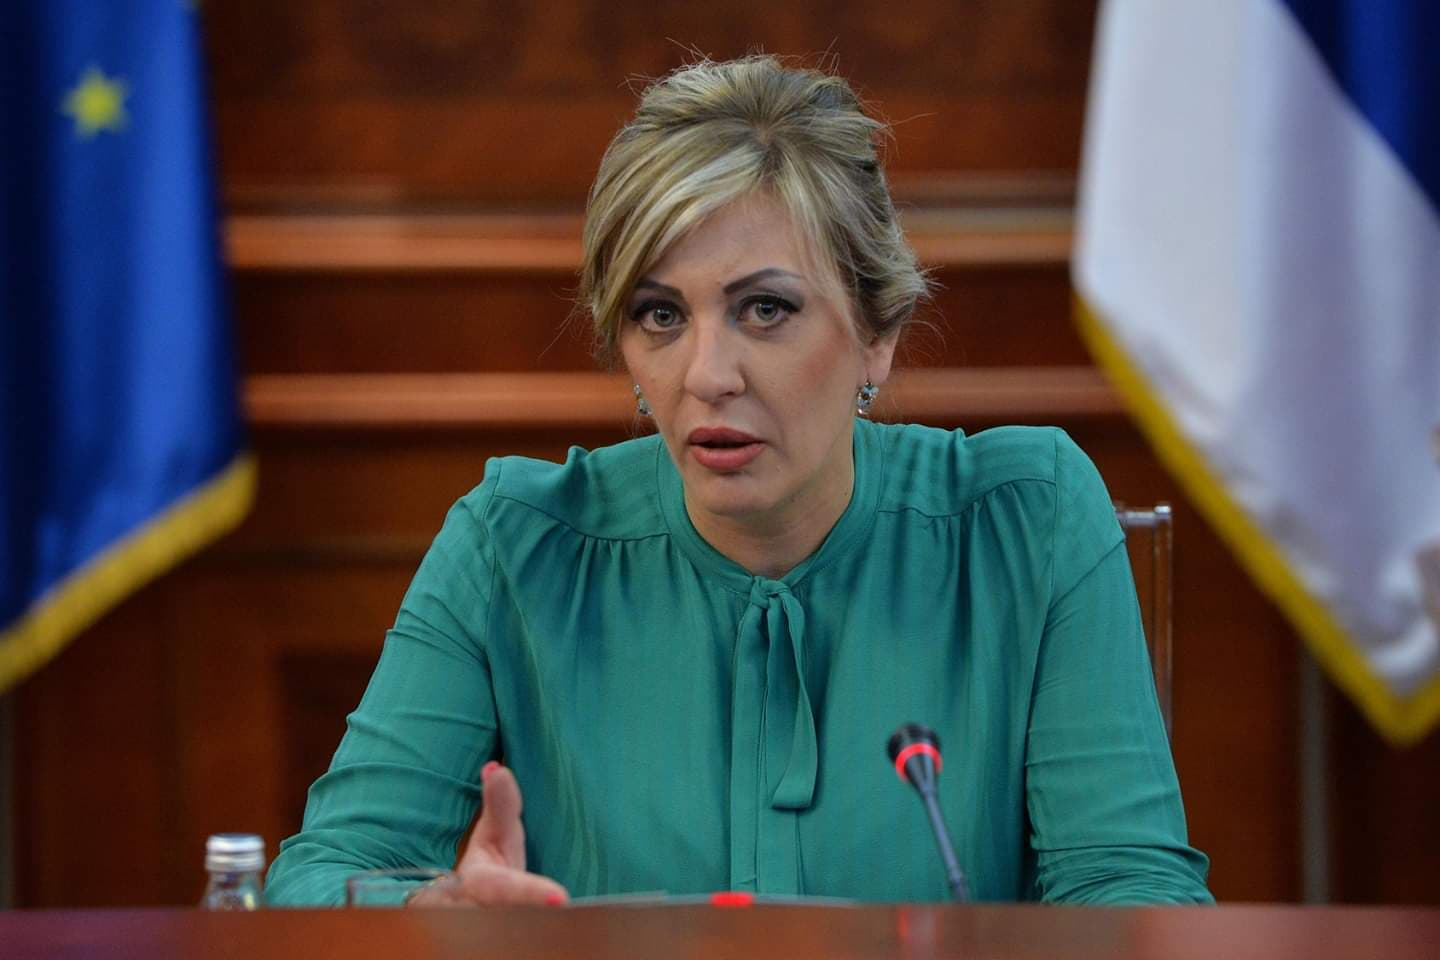 J. Joksimović: Delivery of the equipment purchased owing to the donations from the EU and Norway finalised